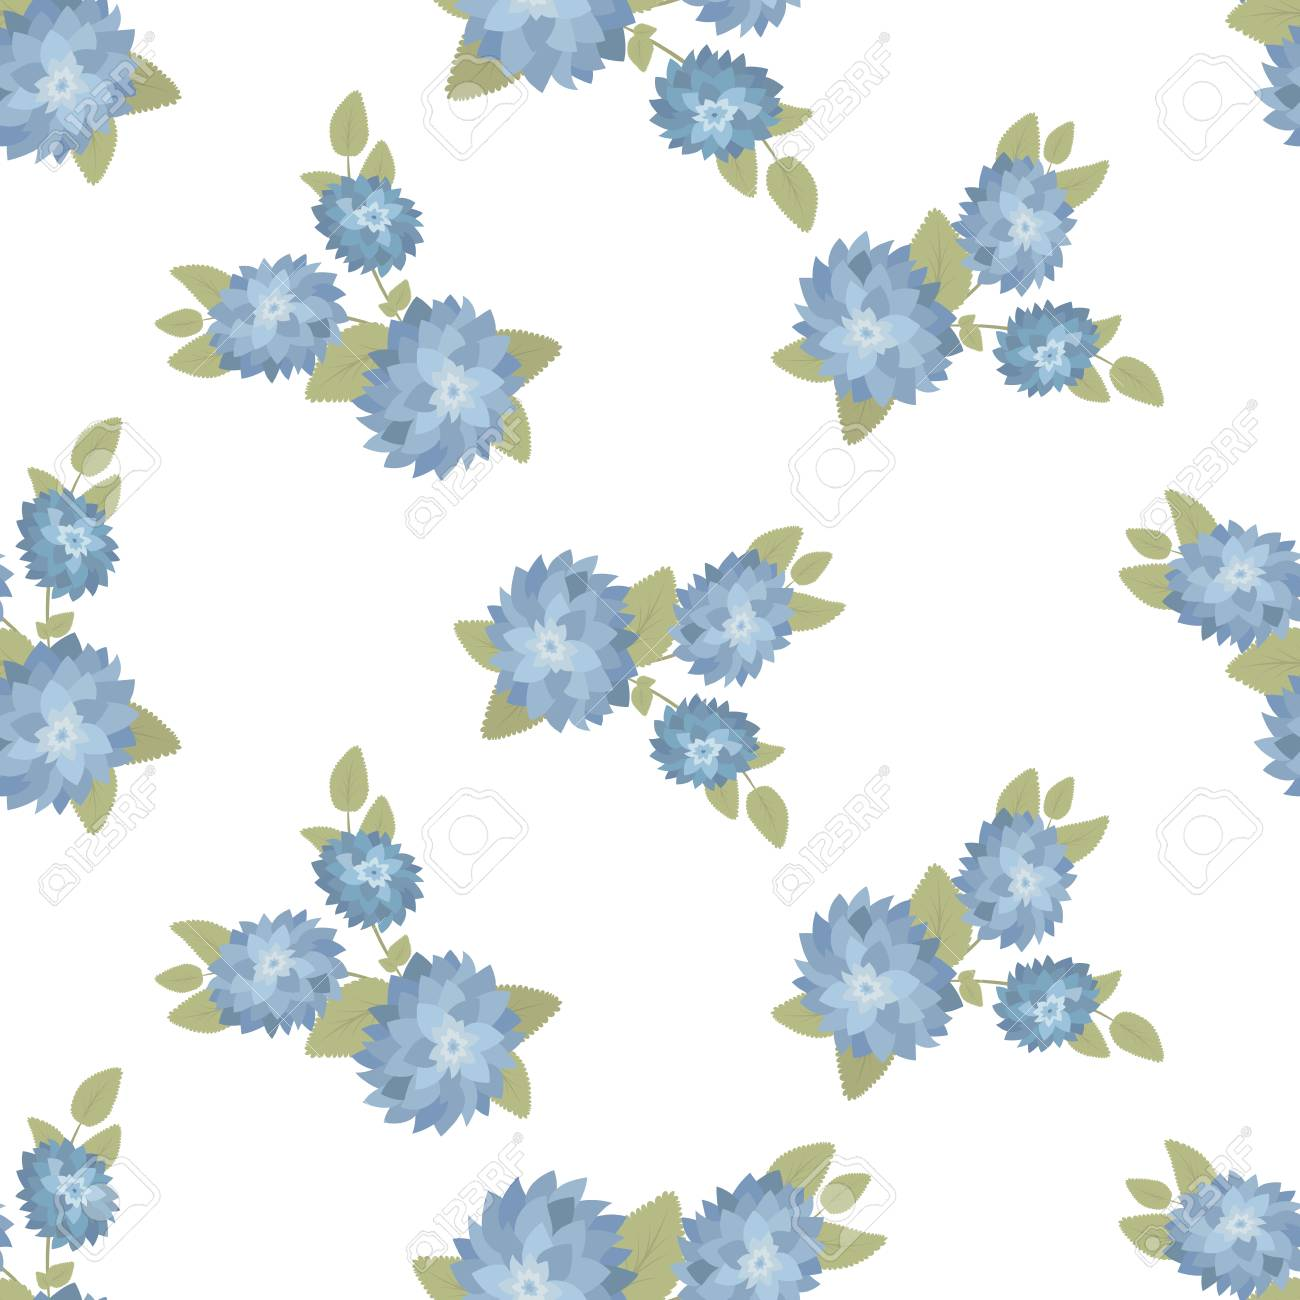 Seamless Vector Floral Wallpaper Decorative Vintage Pattern